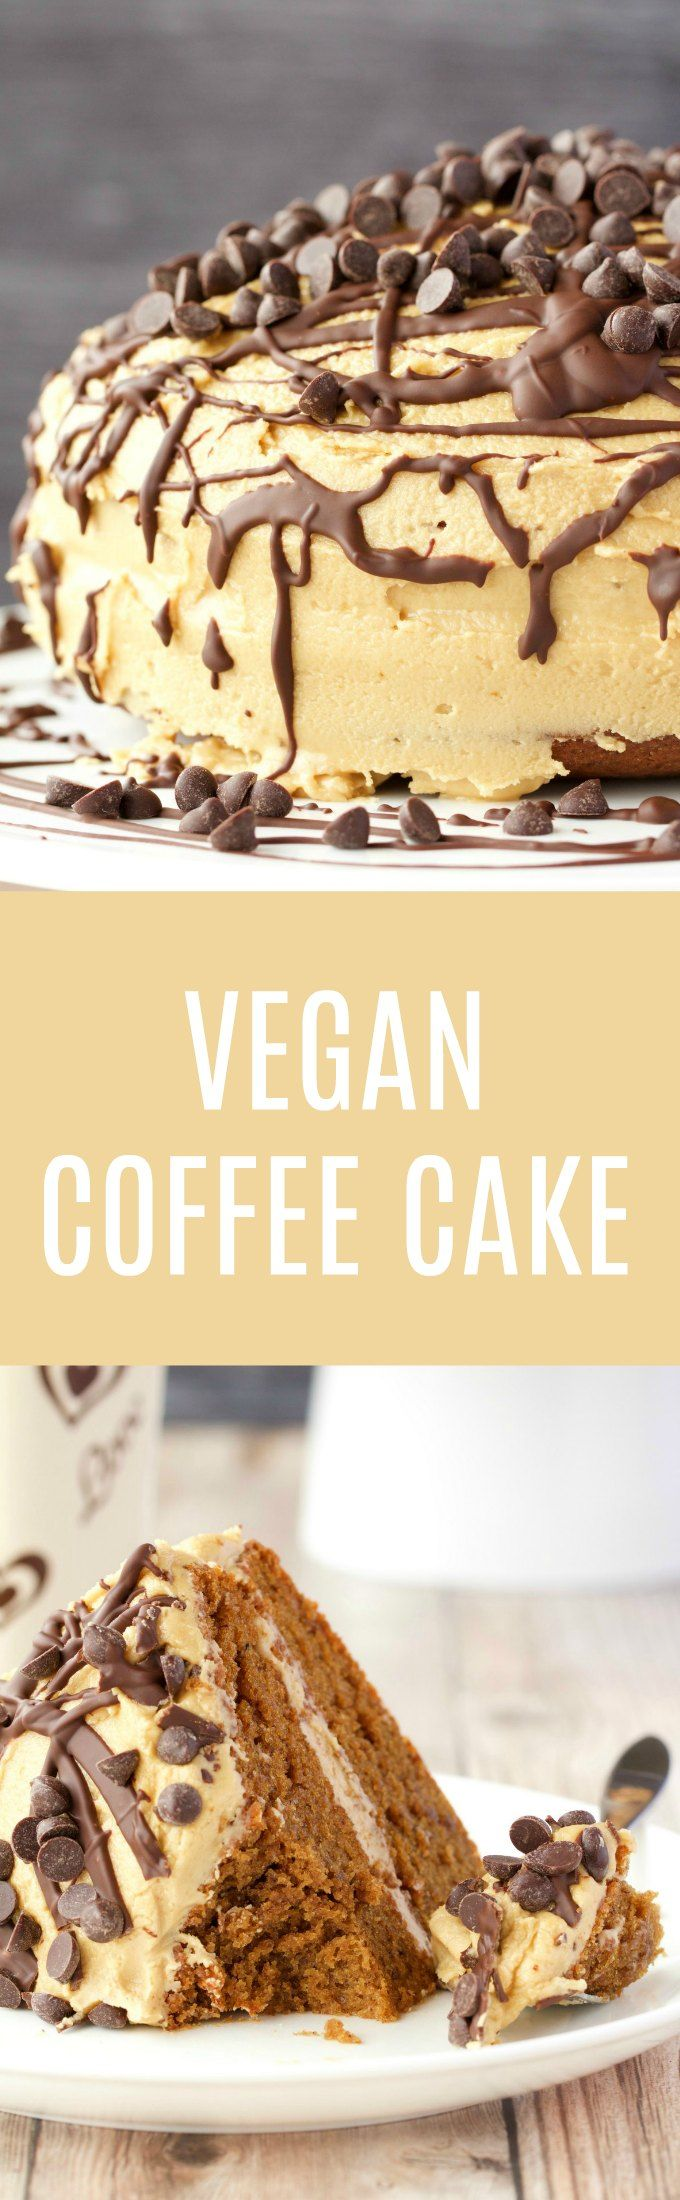 Insanely delicious vegan coffee cake with kahlua frosting. This isn't just a cake to eat with your coffee, this is fabulously decadent coffee flavored cake! Vegan | Vegan Dessert | Vegan Cakes | Dairy-Free | lovingitvegan.com